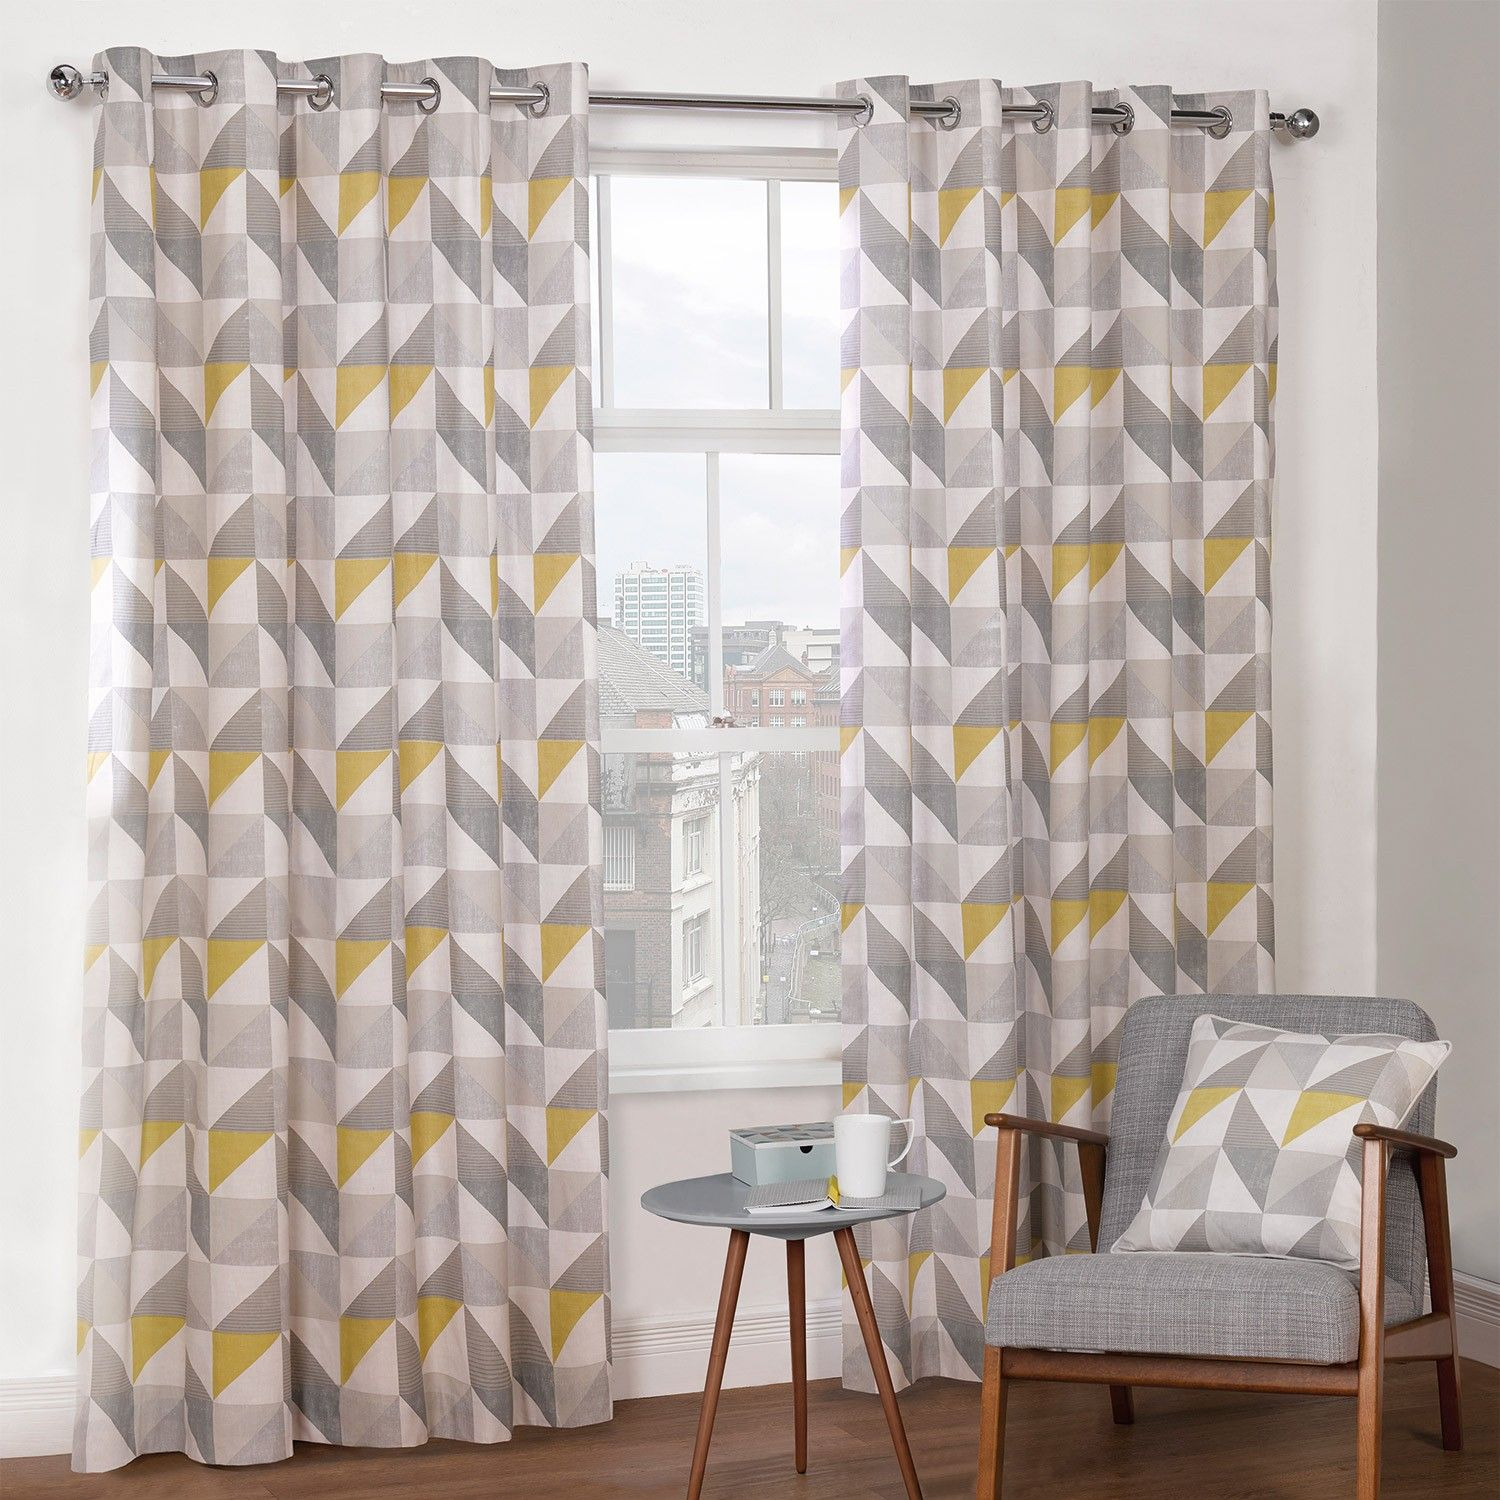 Curtains In Gray Living Room Designer Ideas For Rooms Delta Grey Yellow Luxury Lined Eyelet Pair 2019 Julian Charles